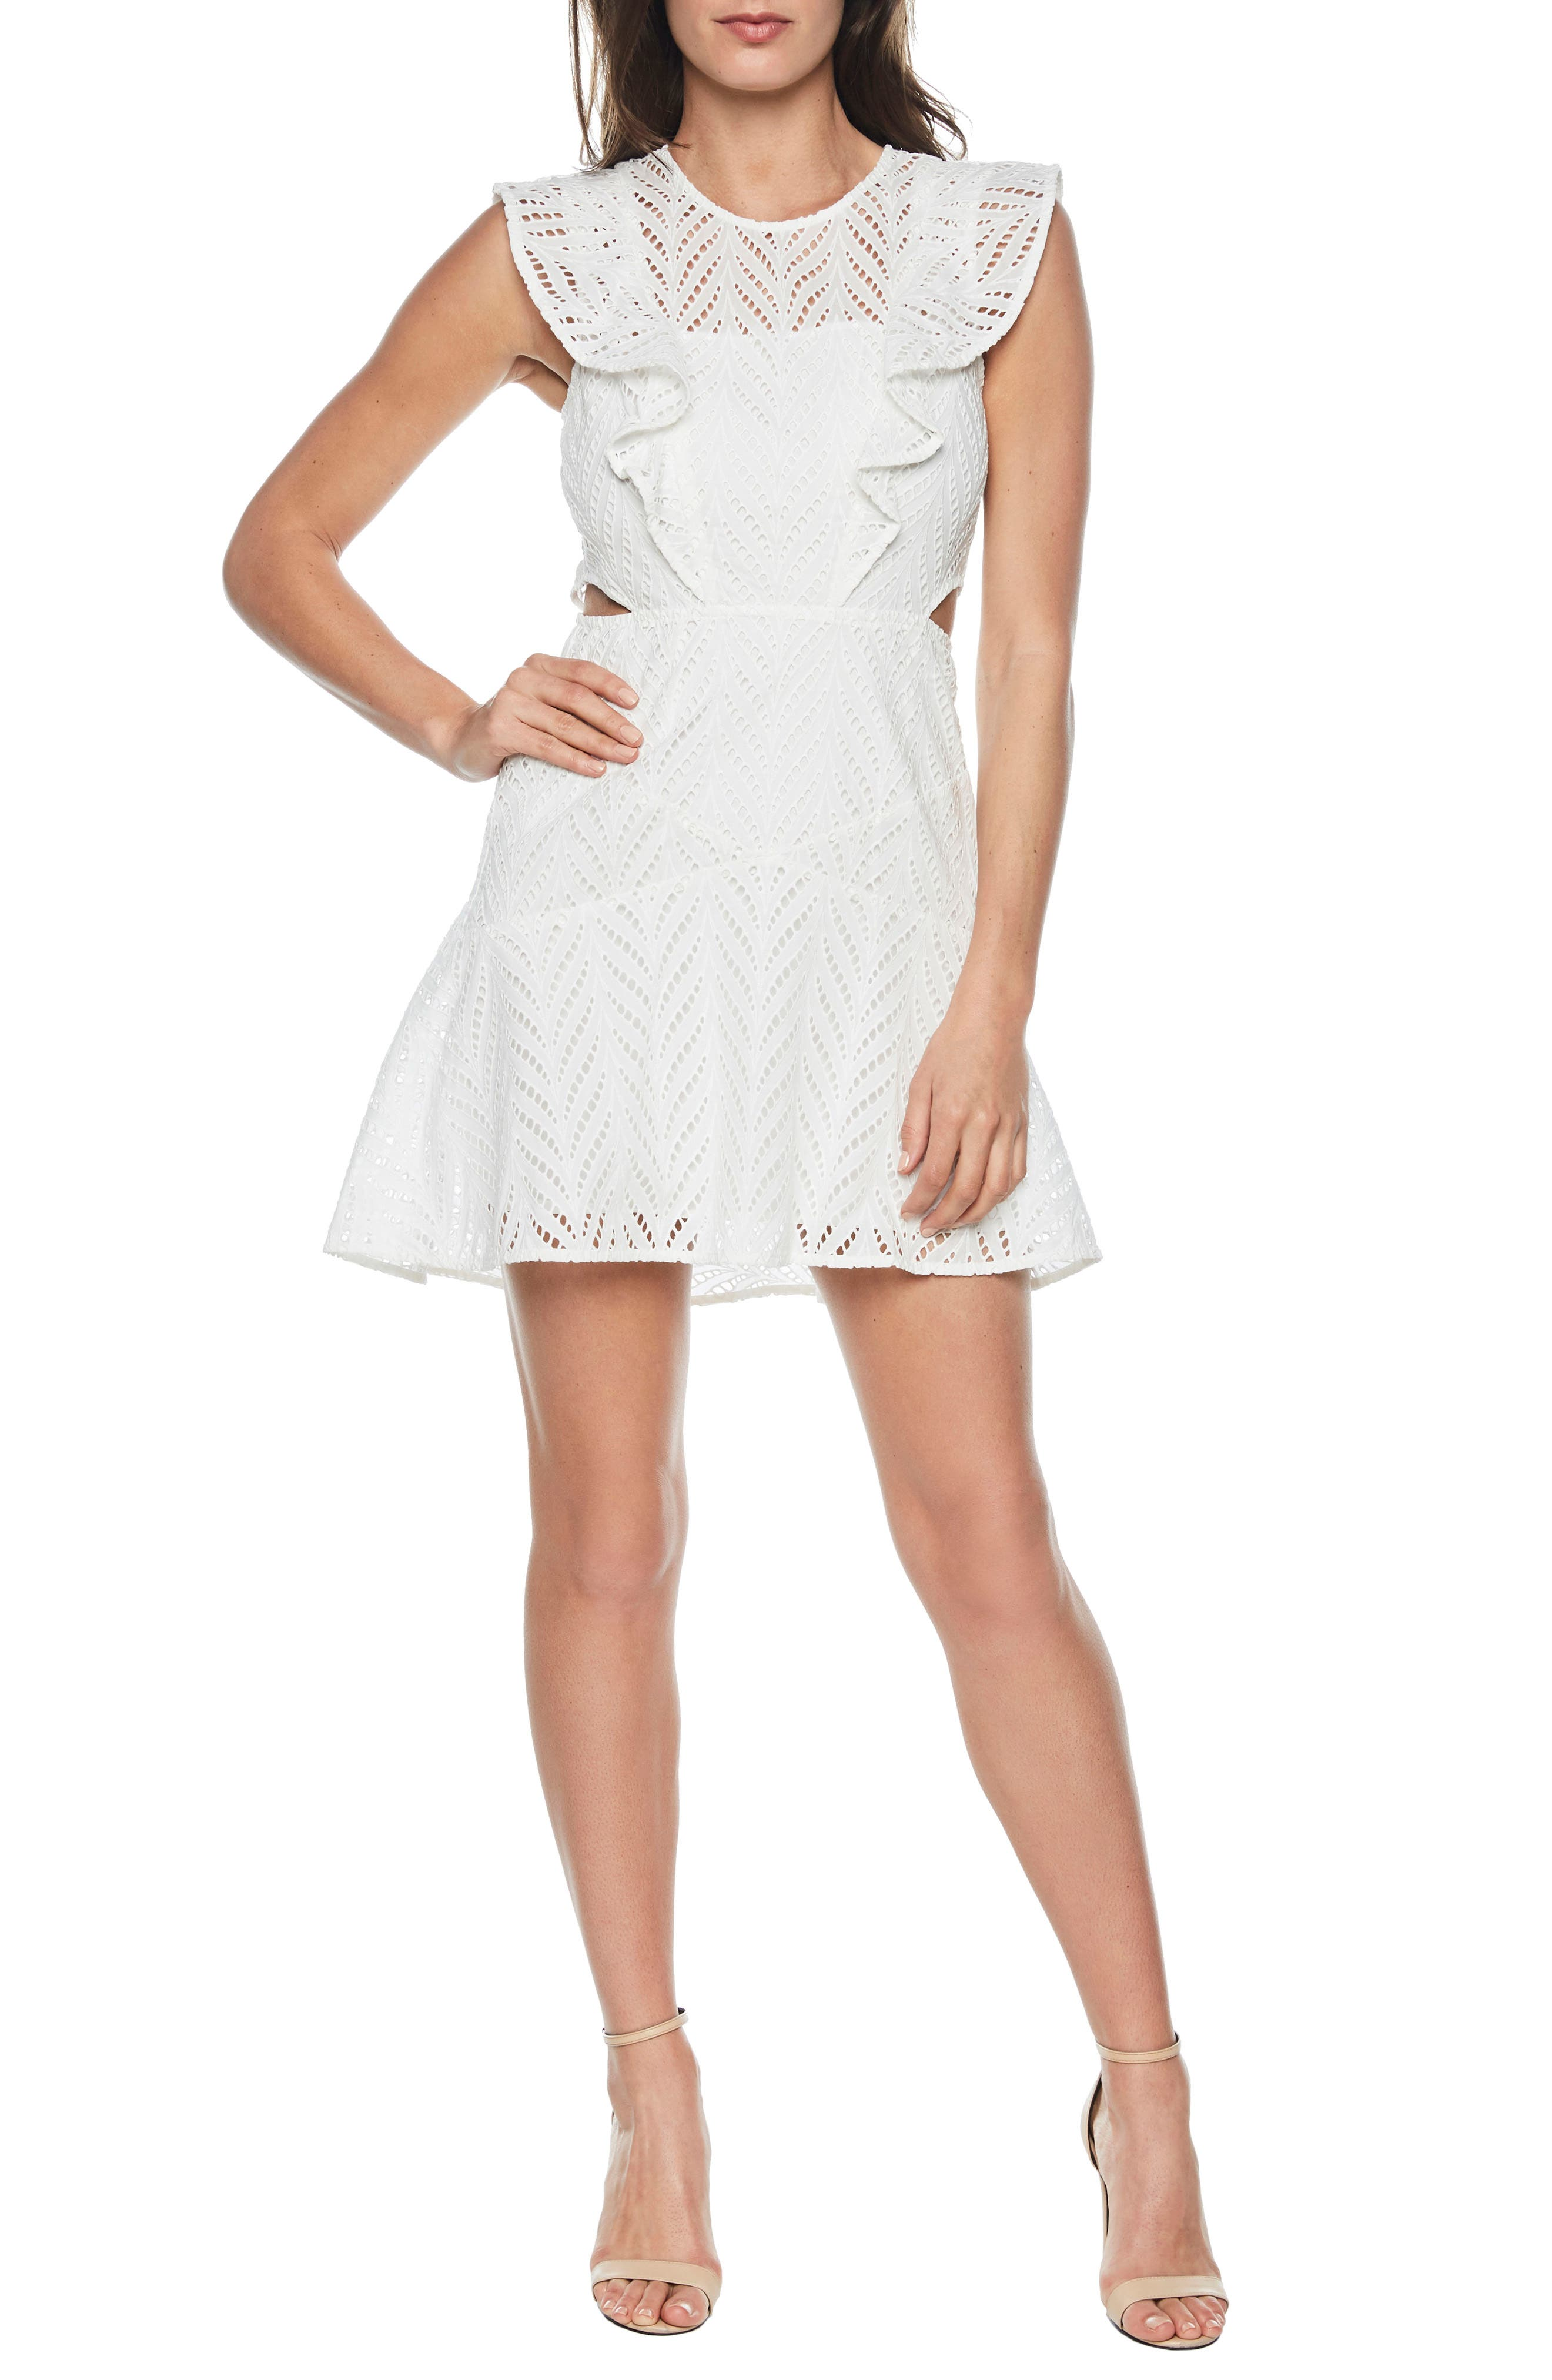 Kira Crochet Ruffle Dress,                         Main,                         color, Ivory